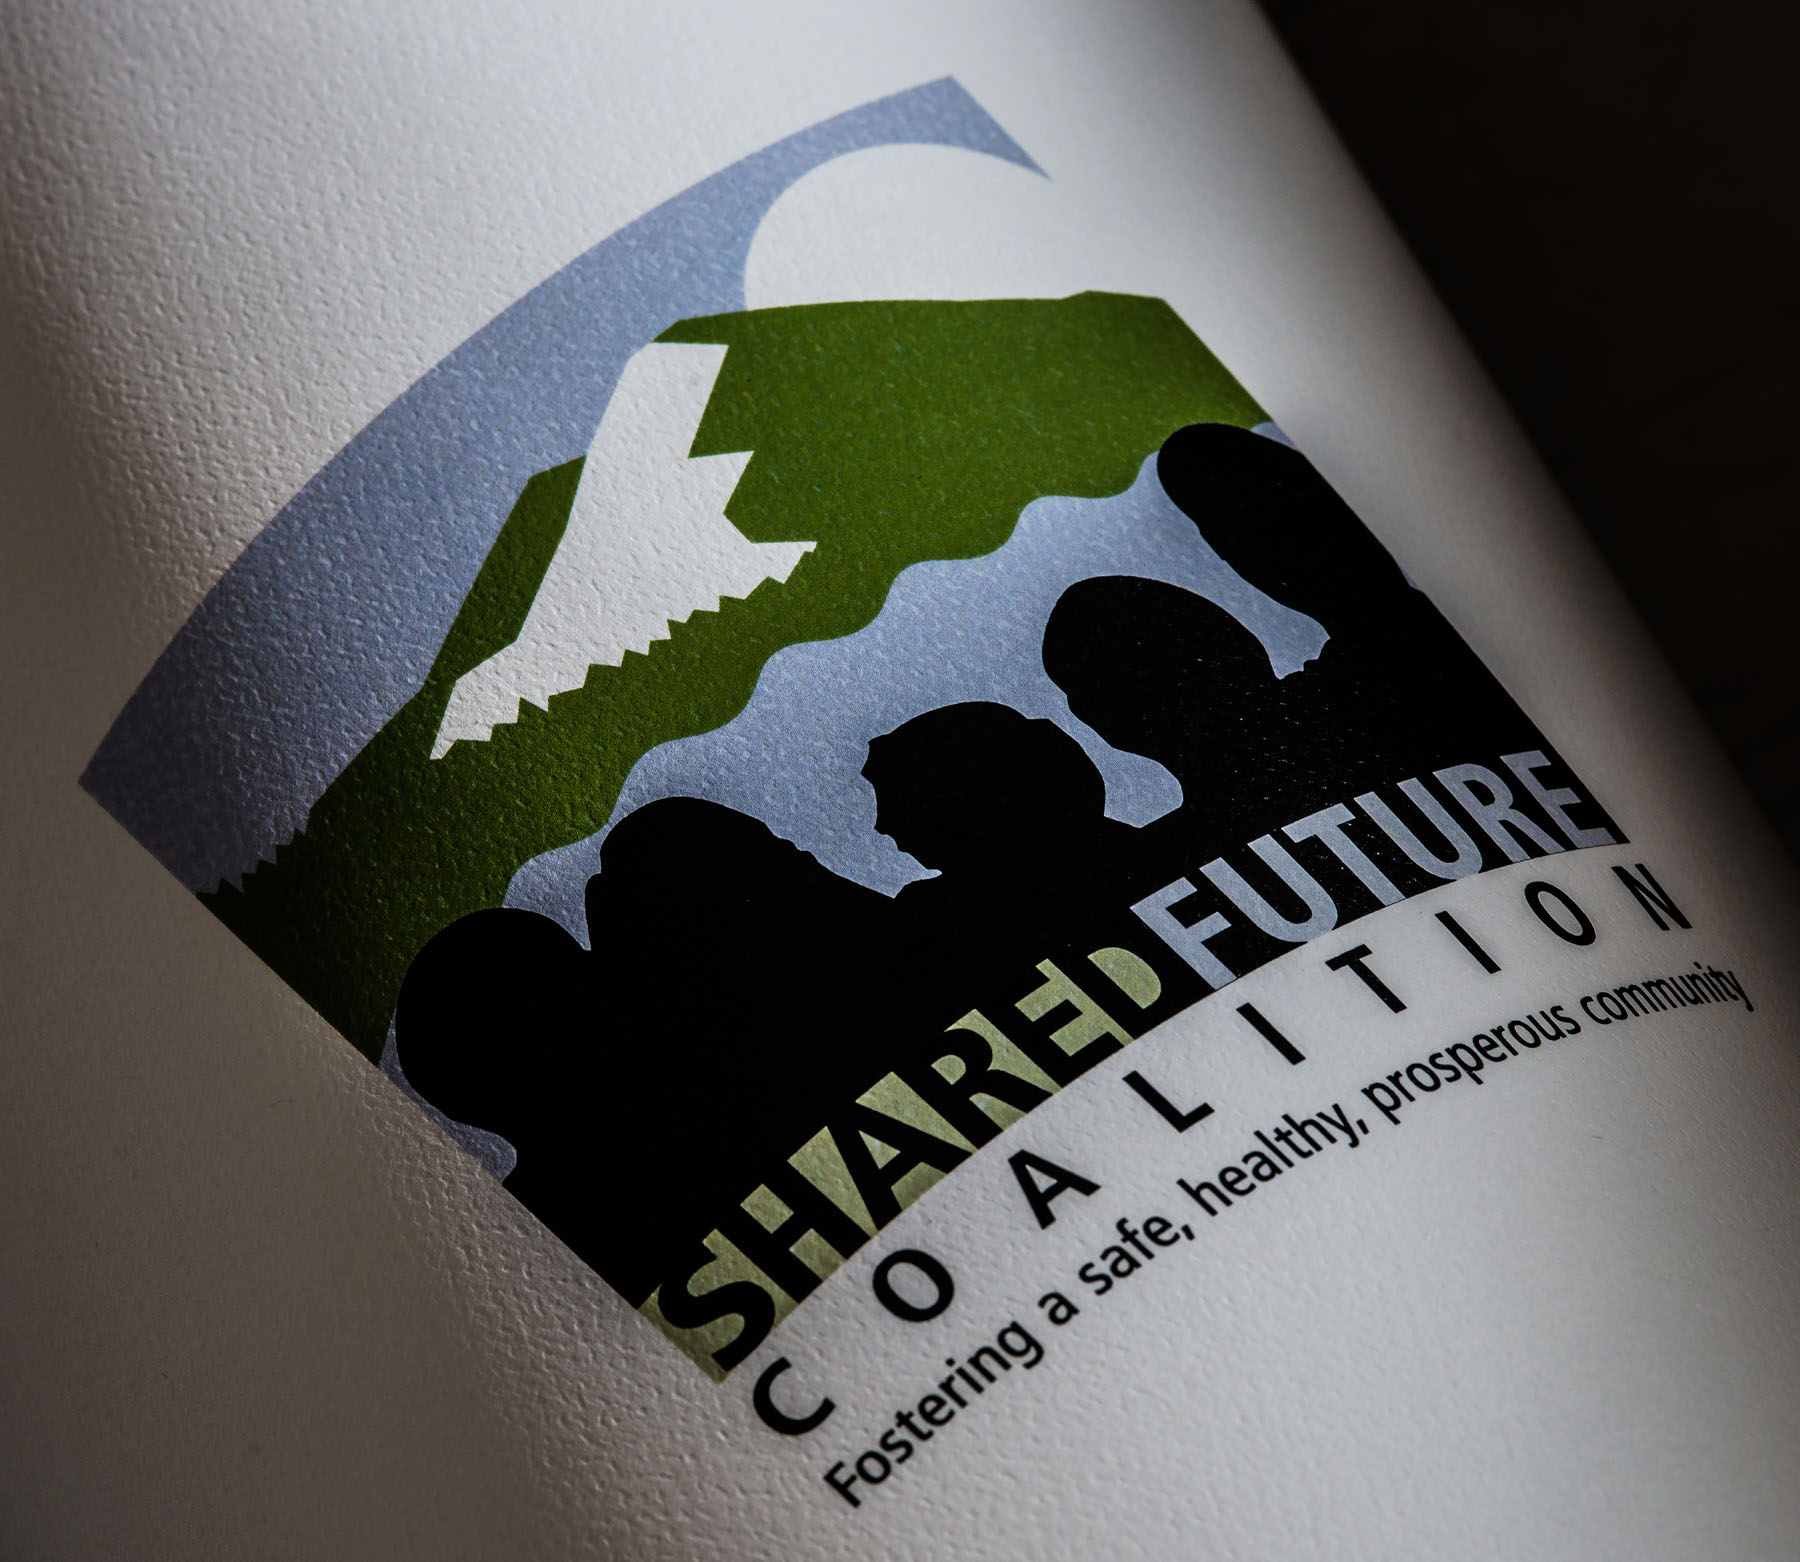 DESCHUTES COUNTY : SHARED FUTURE COALITION